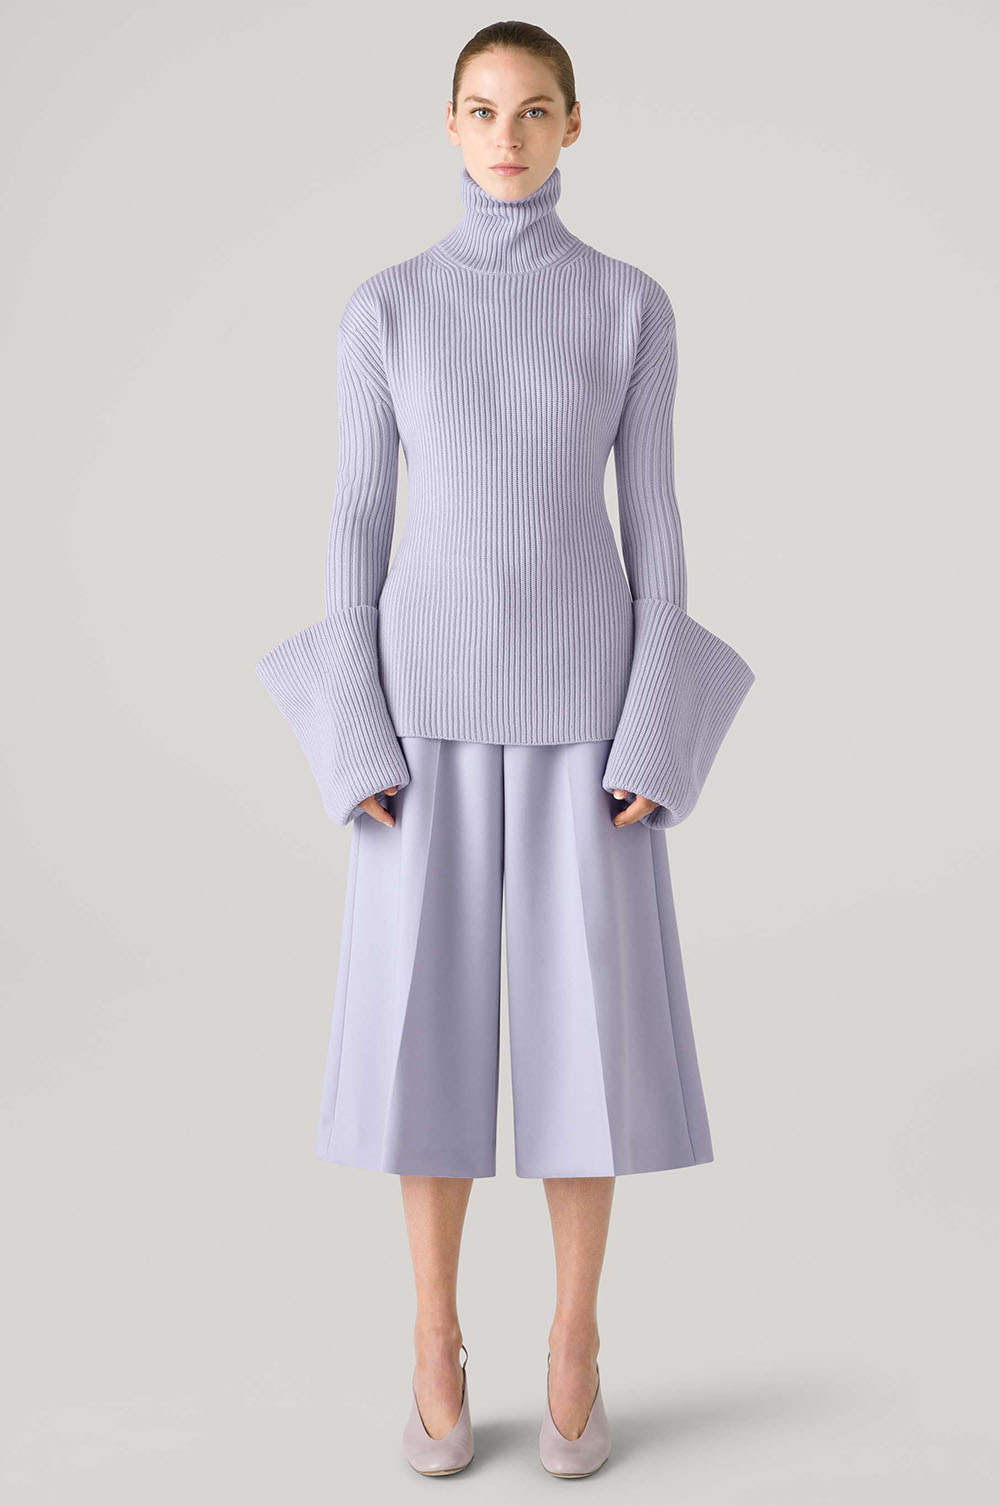 St John Fall 2021 Collection I Lilac Turtleneck and Culotte #ootdstyle